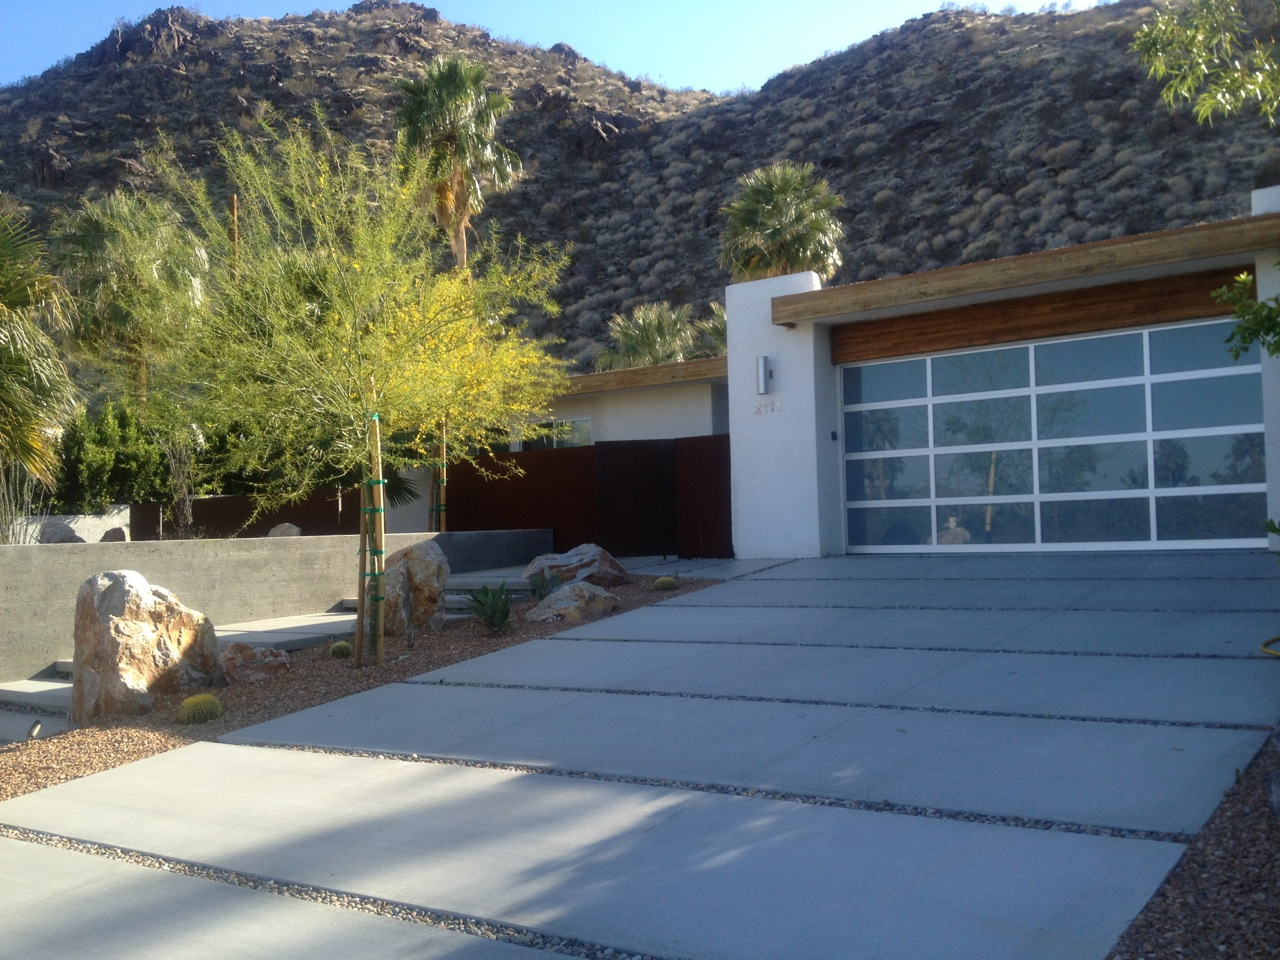 Modern driveway with a deluxe appearance